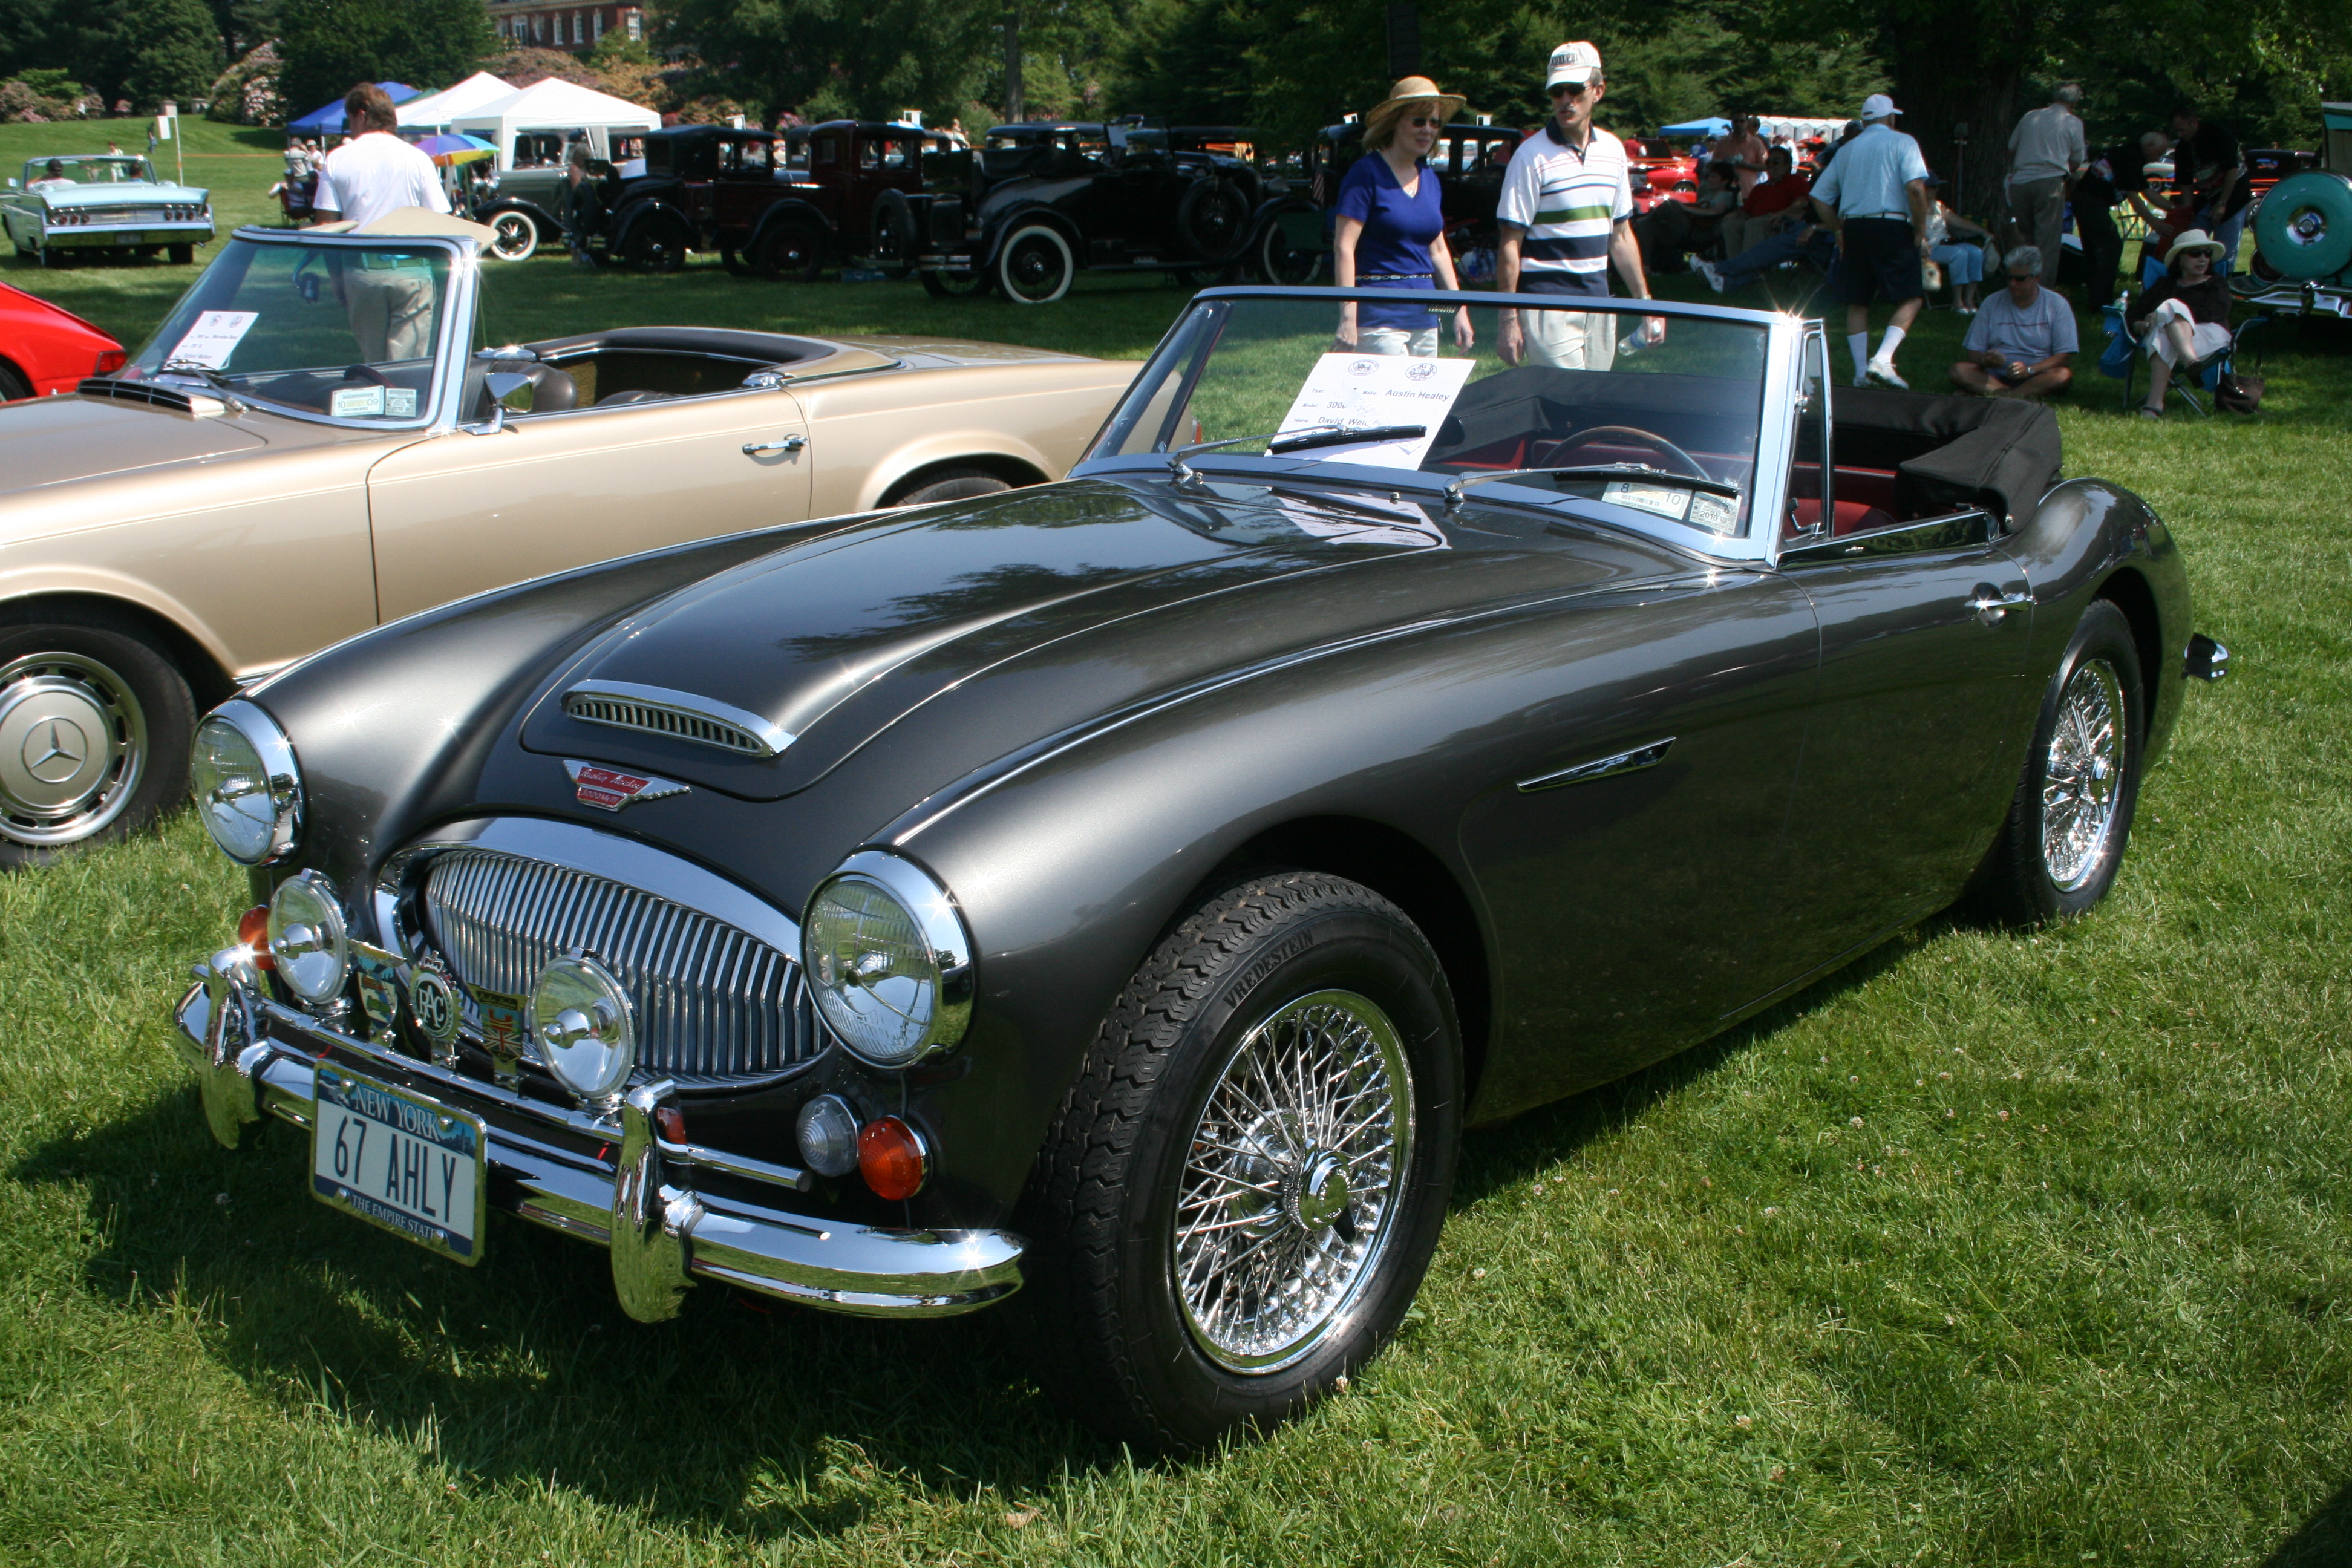 1967 austin healey 3000 images pictures and videos. Black Bedroom Furniture Sets. Home Design Ideas